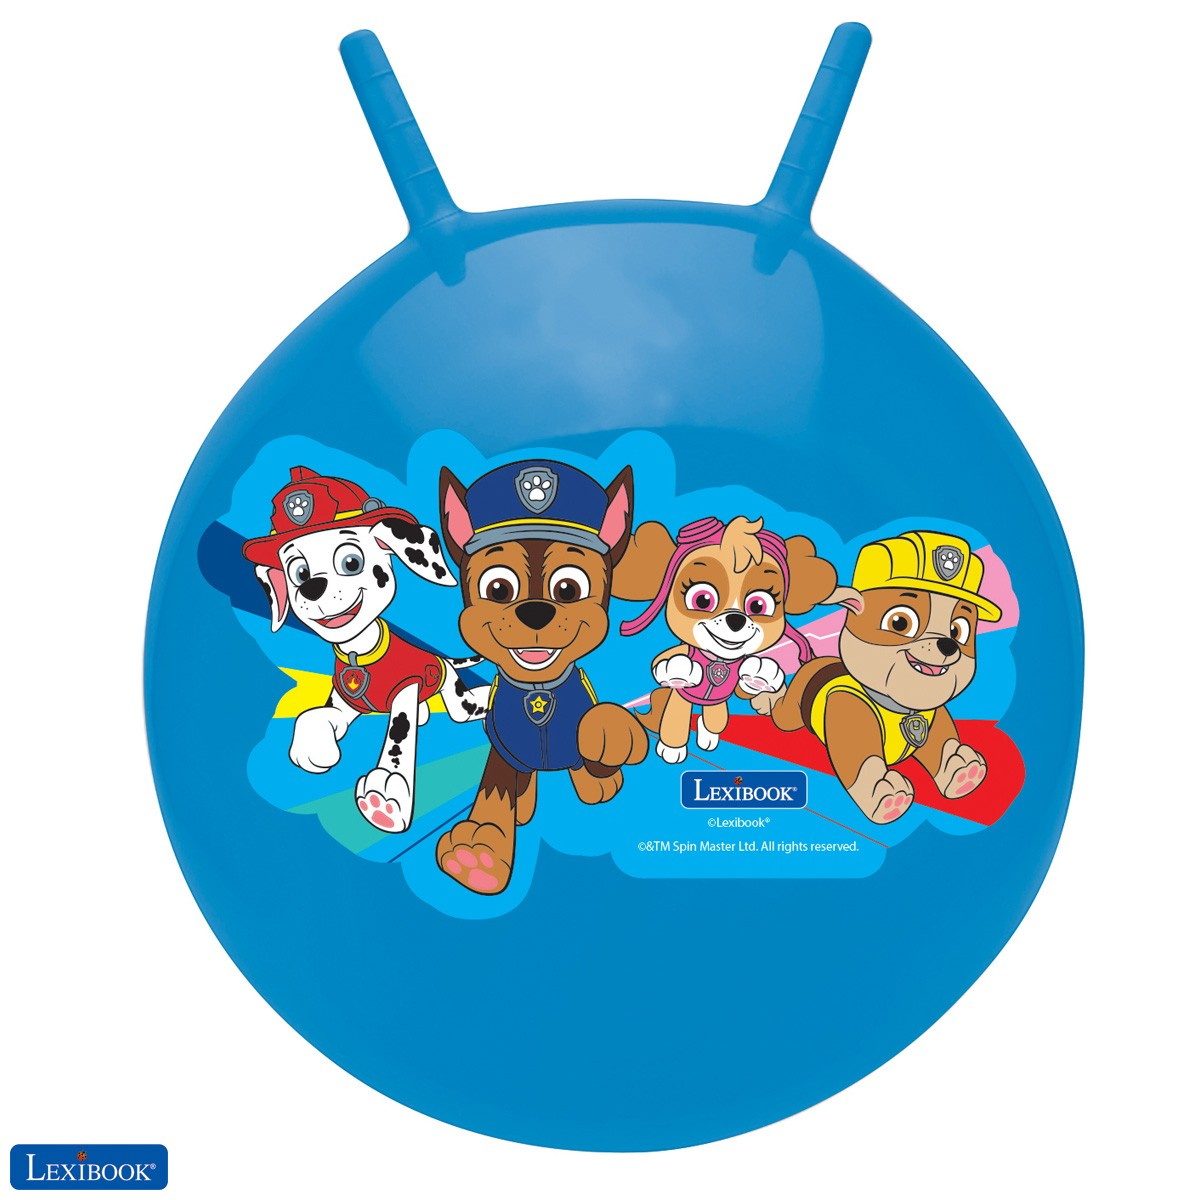 Paw Patrol Space Hopper, Manual pump included